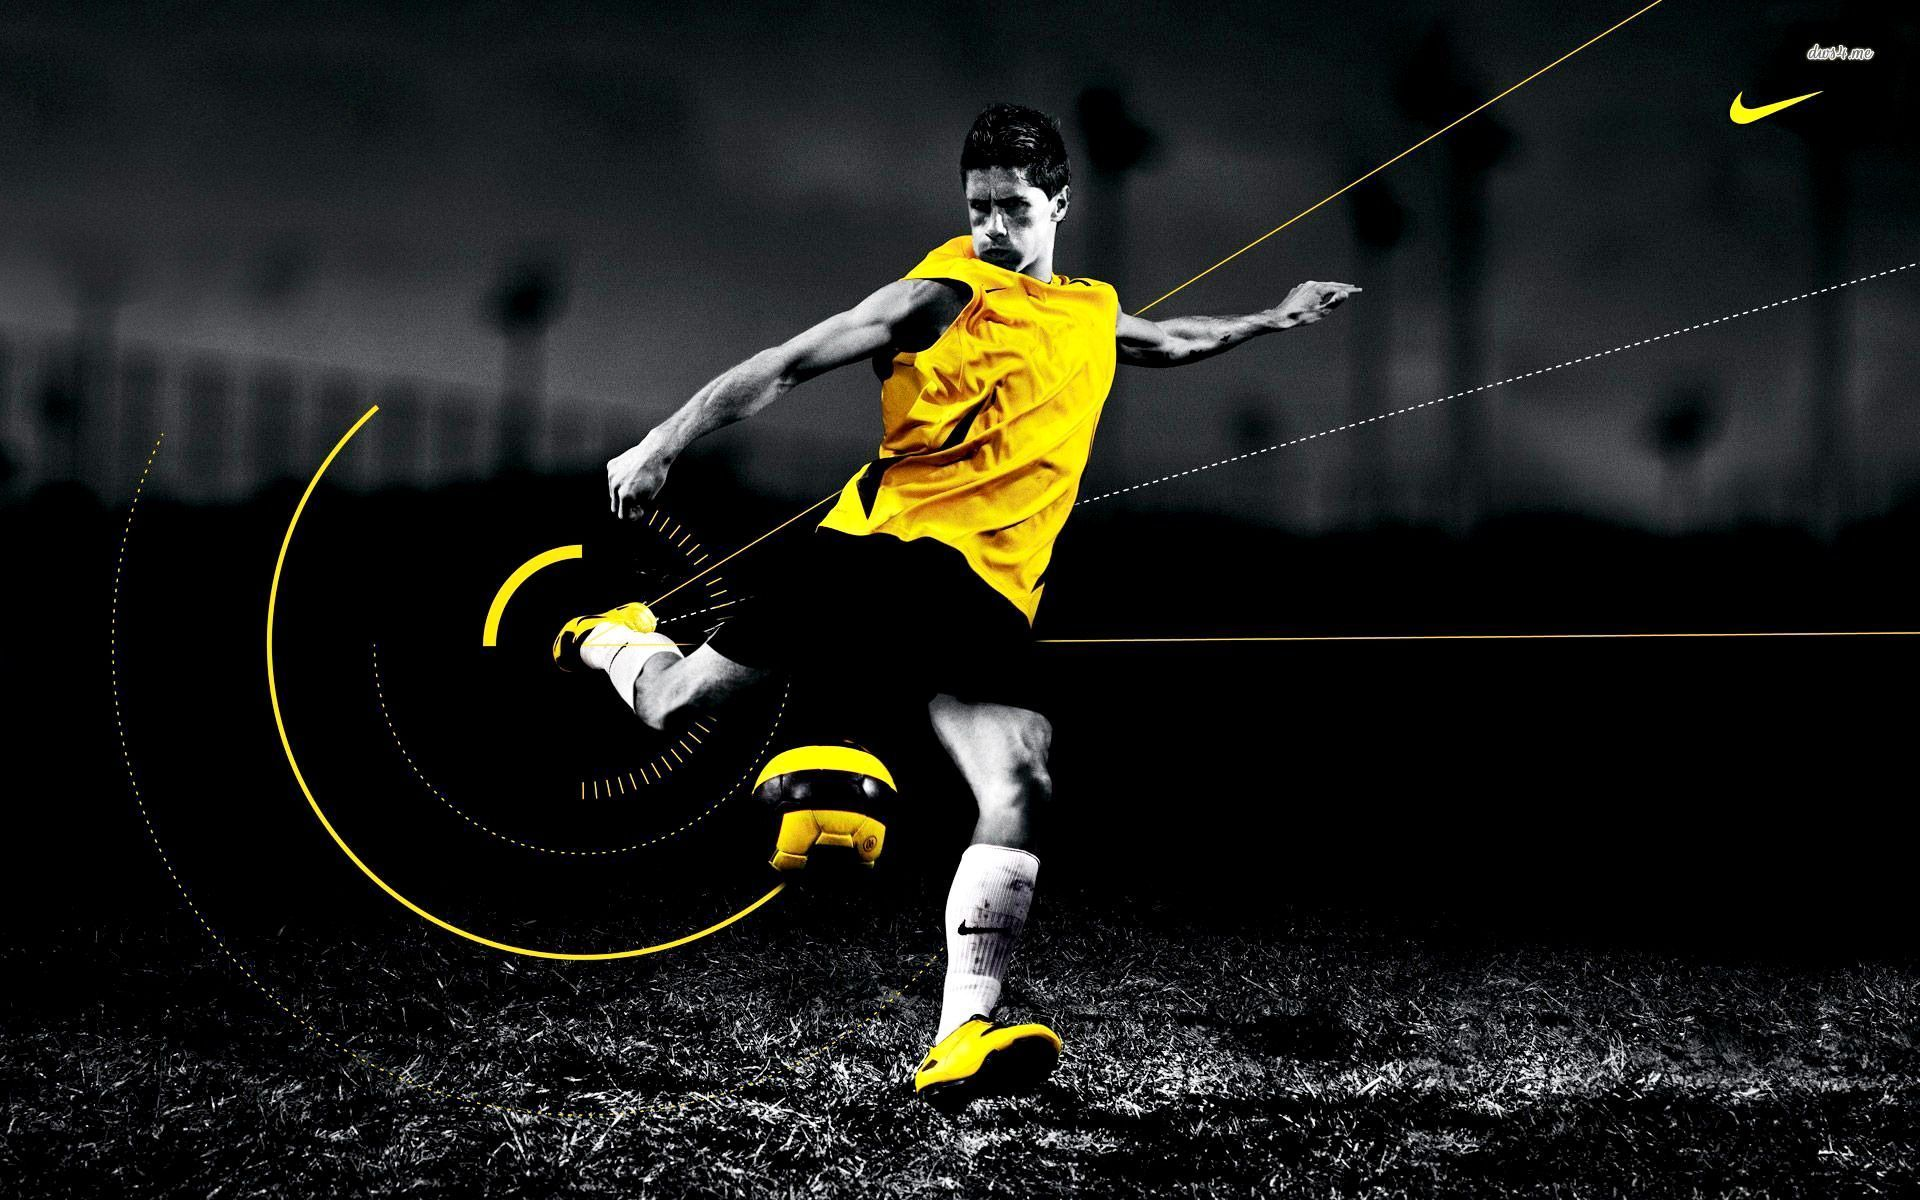 HD Wallpapers Of Sports